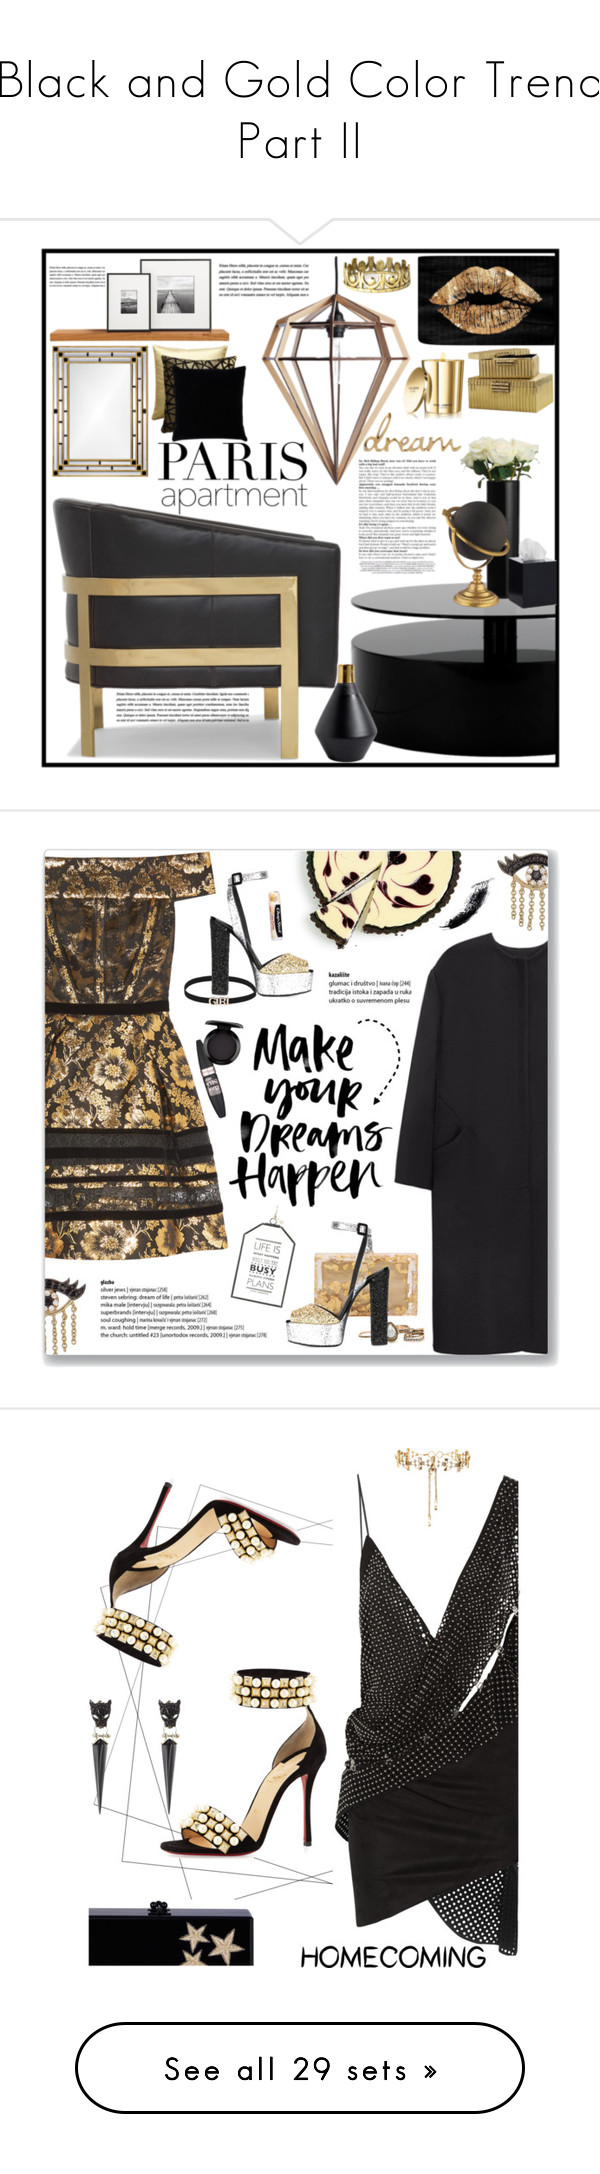 """""""Black and Gold Color Trend Part II"""" by yours-styling-best-friend ❤ liked on Polyvore featuring interior, interiors, interior design, home, home decor, interior decorating, Mitchell Gold + Bob Williams, WALL, John Lewis and Oliver Gal Artist Co."""